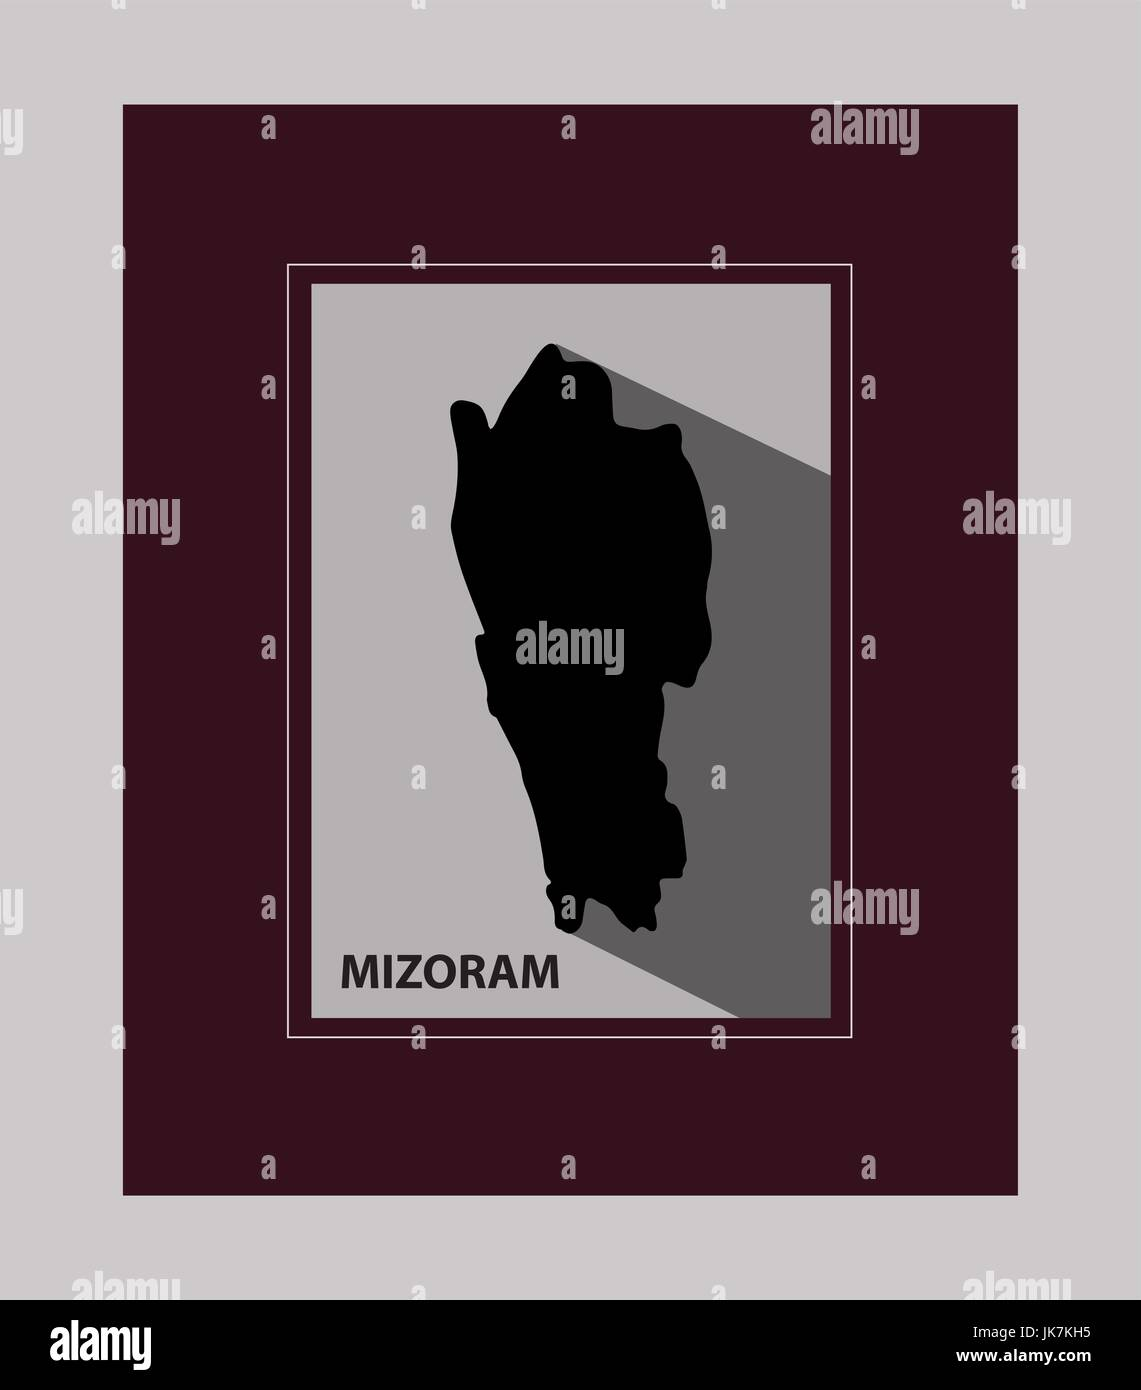 The state of Mizoram - Stock Vector